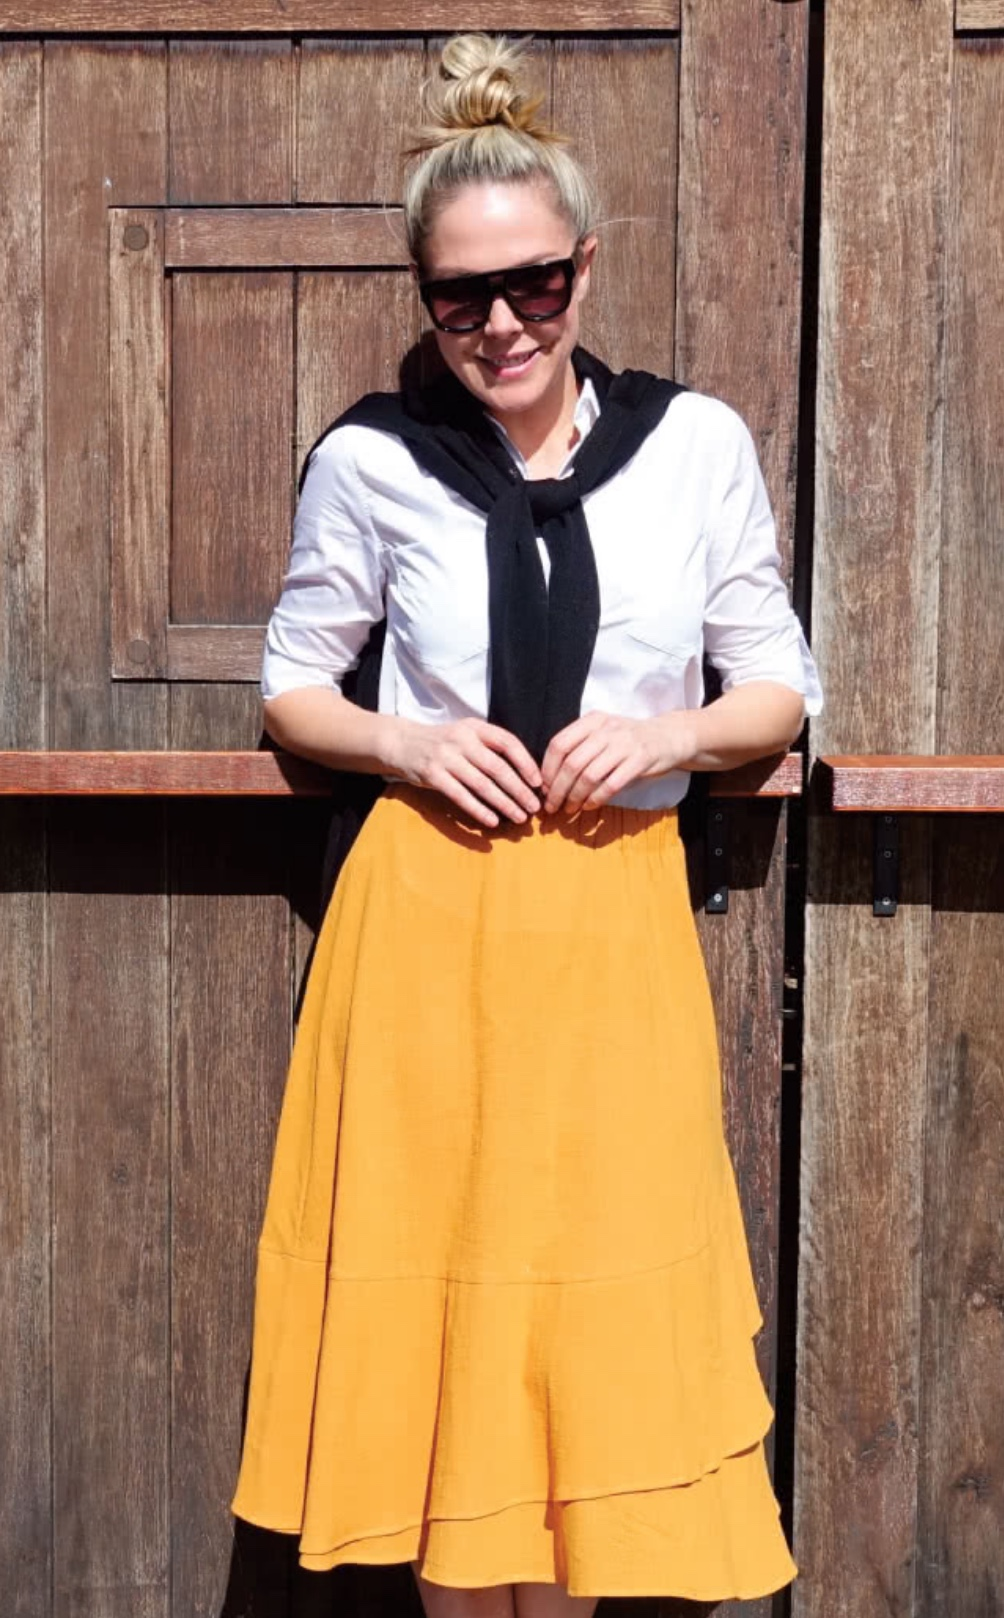 Sorrento skirt sewing pattern from Style Arc